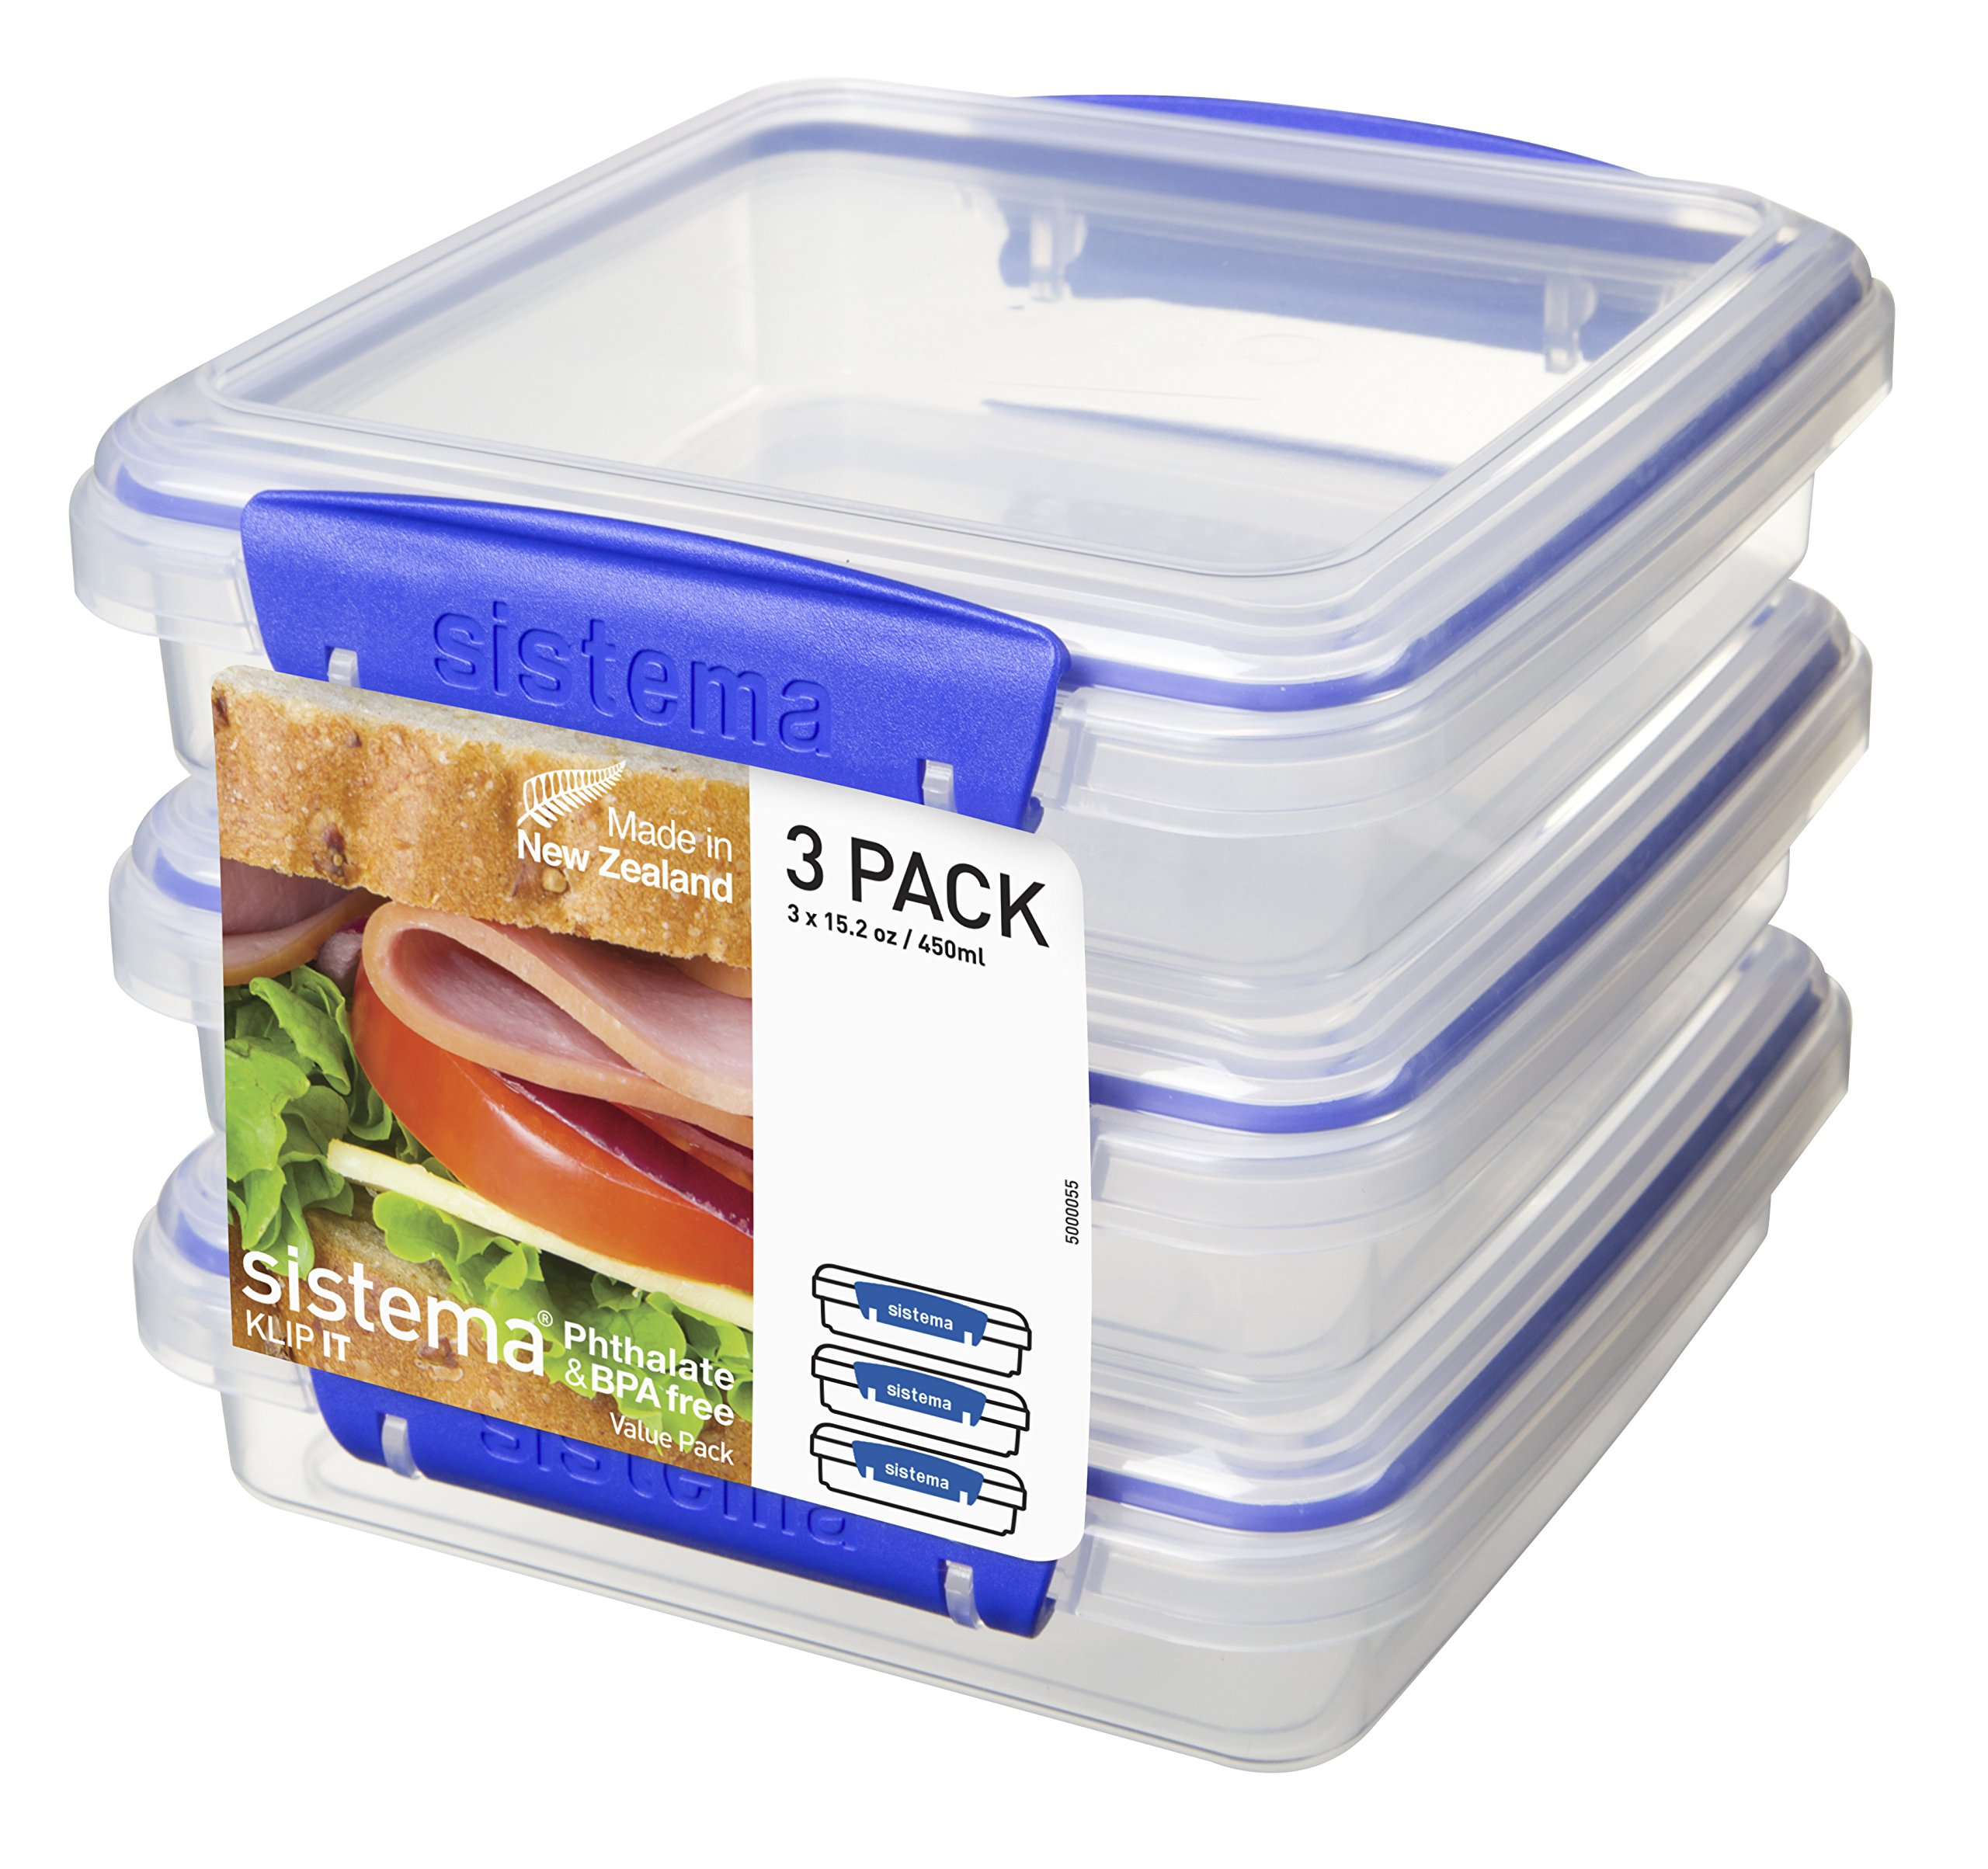 Sistema KLIP IT Collection Sandwich Box Food Storage Container, 15.2 oz./0.4 L, Clear/Blue, 3 Count by Sistema